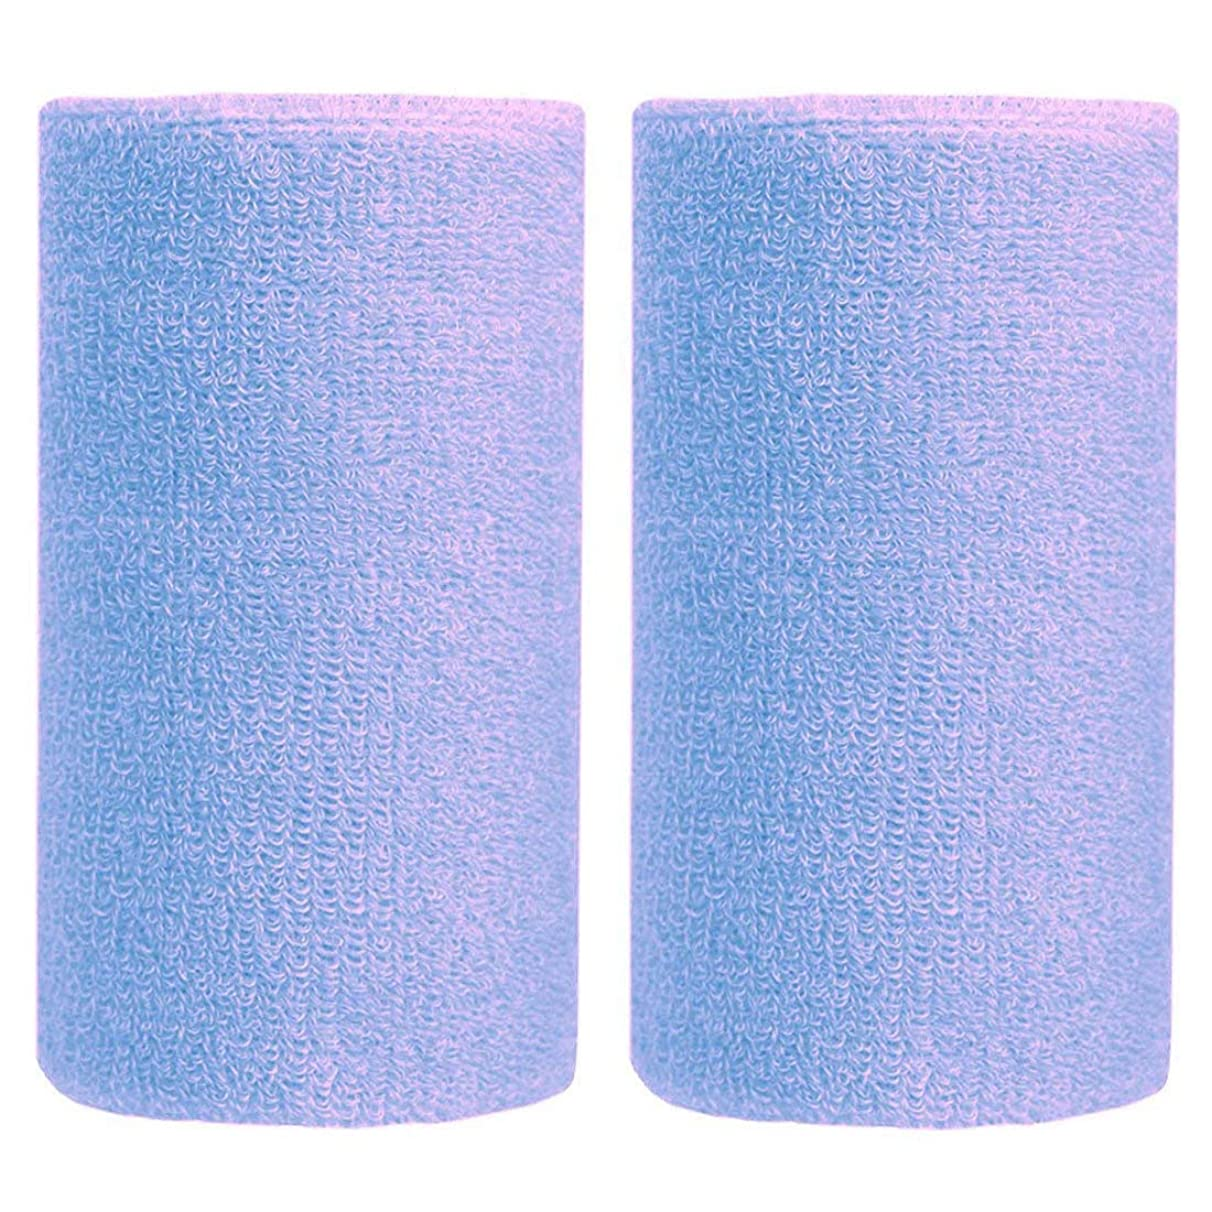 BBOLIVE 6' Inch Wrist Sweatband in 19 Different Neon Colors - Athletic Cotton Terry Cloth - Great for All Outdoor Activity(1 Pair)